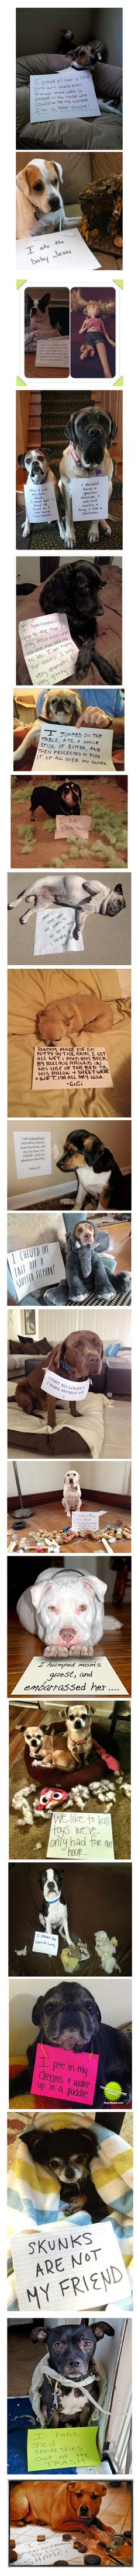 The best of dog shaming - Part 13 | FB TroublemakersFB Troublemakers